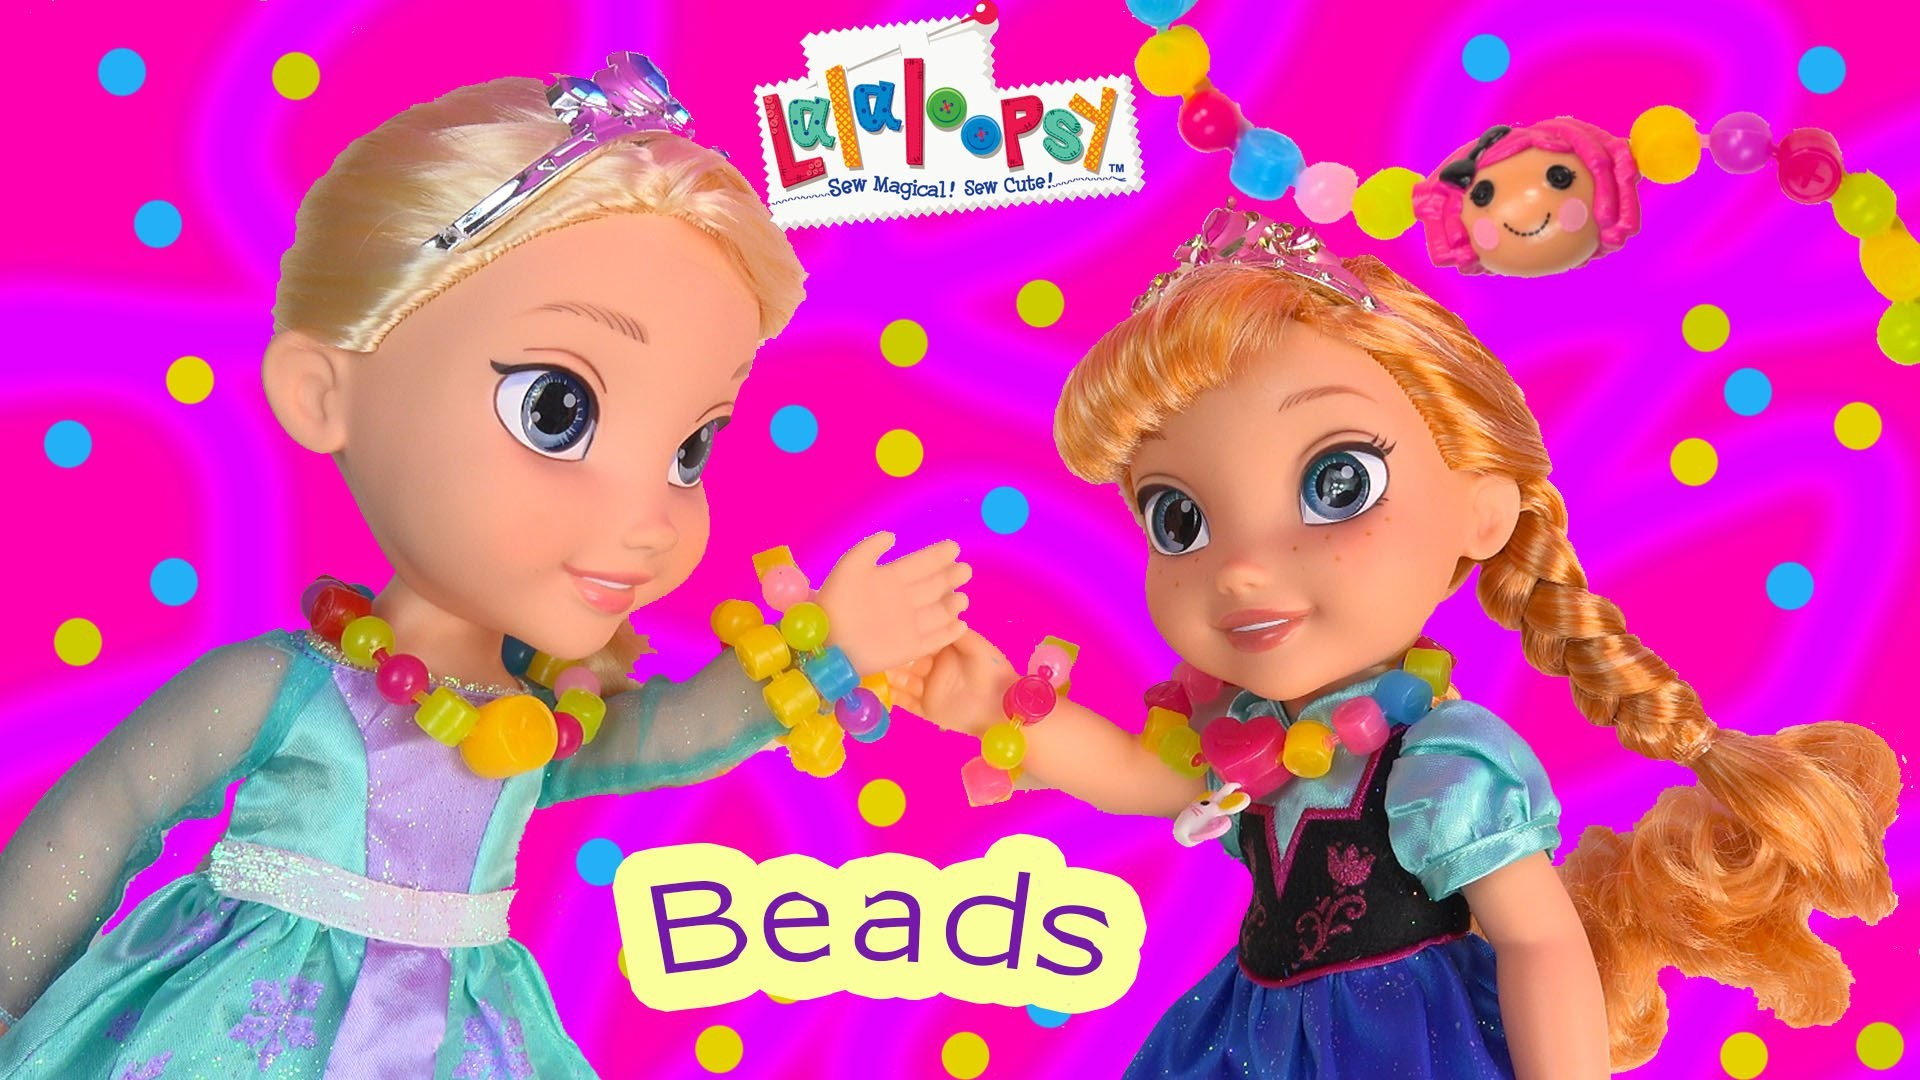 Queen Elsa Princess Anna Lalaloopsy Pop Beads Crumbs Sugar Cookie Disney Frozen Toddlers Necklaces